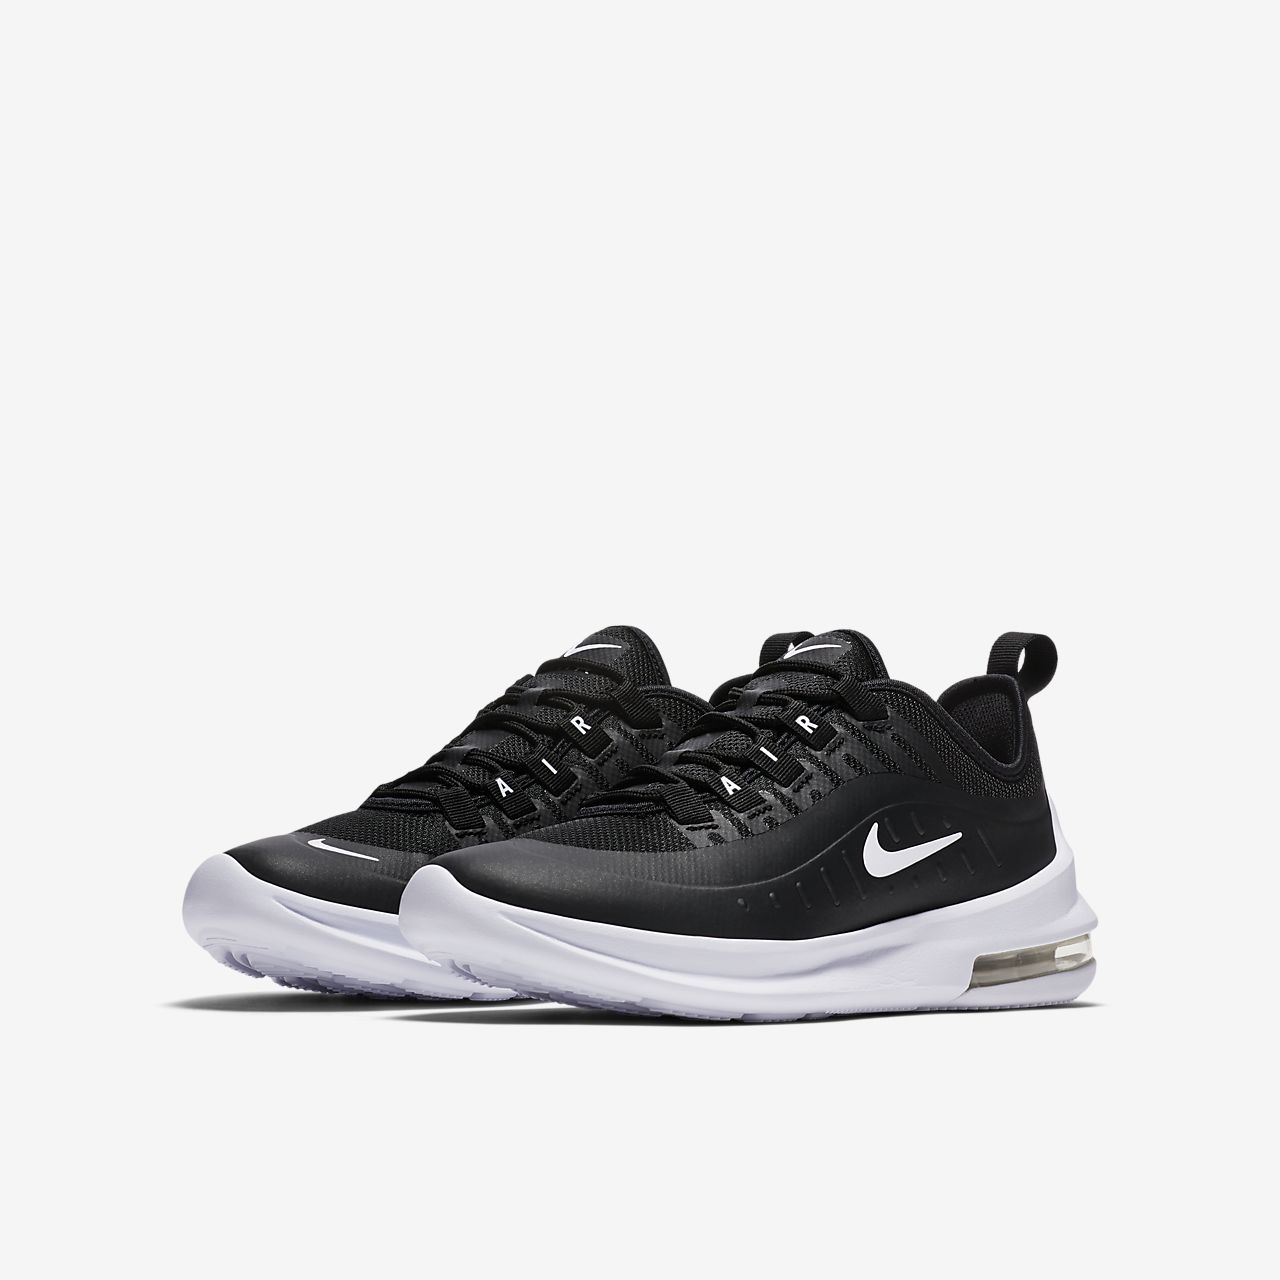 new products 31067 dc7e1 ... Nike Air Max Axis Zapatillas - Niño a